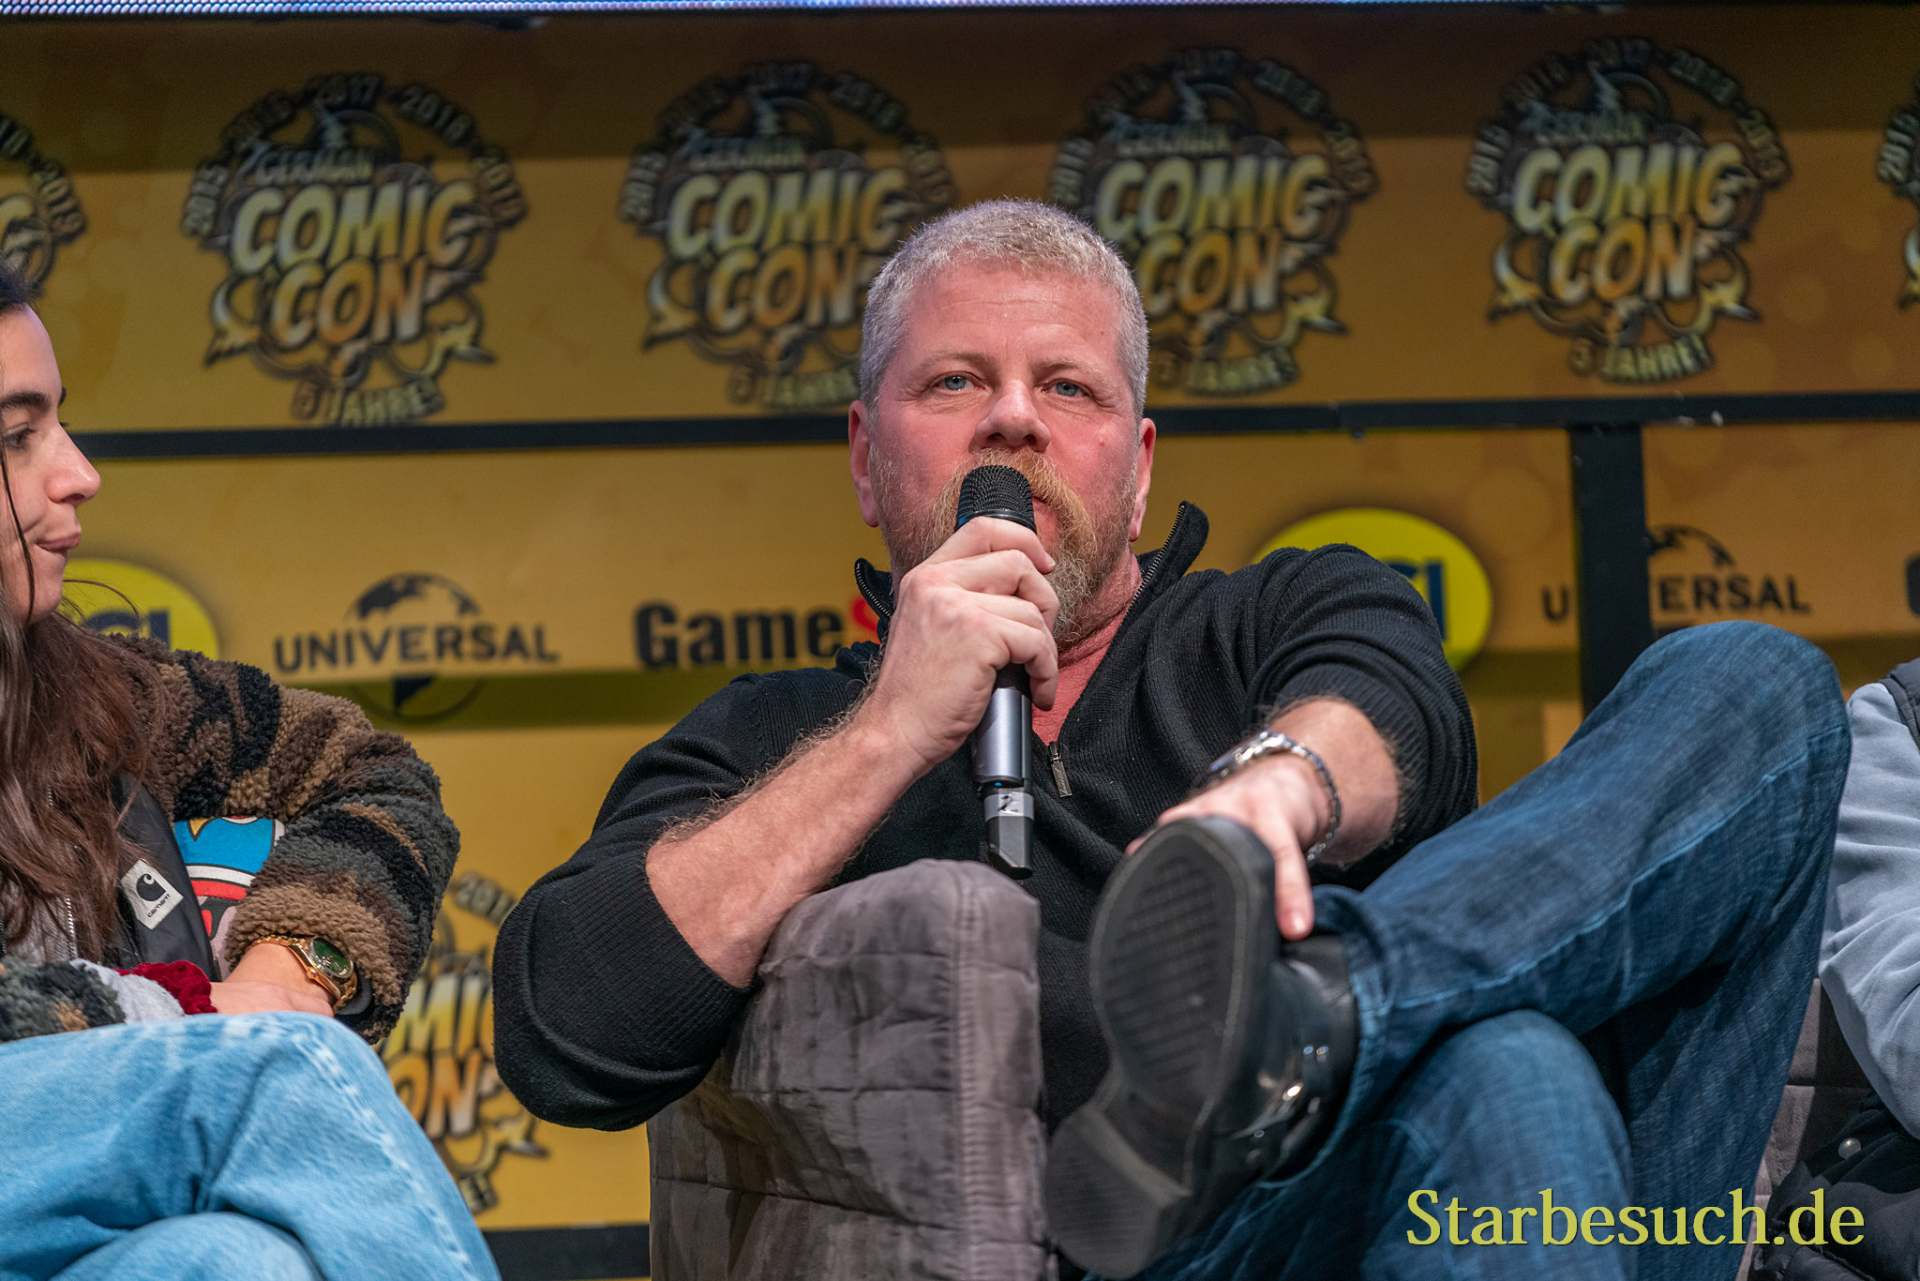 DORTMUND, GERMANY - December 7th 2019: Michael Cudlitz at German Comic Con Dortmund